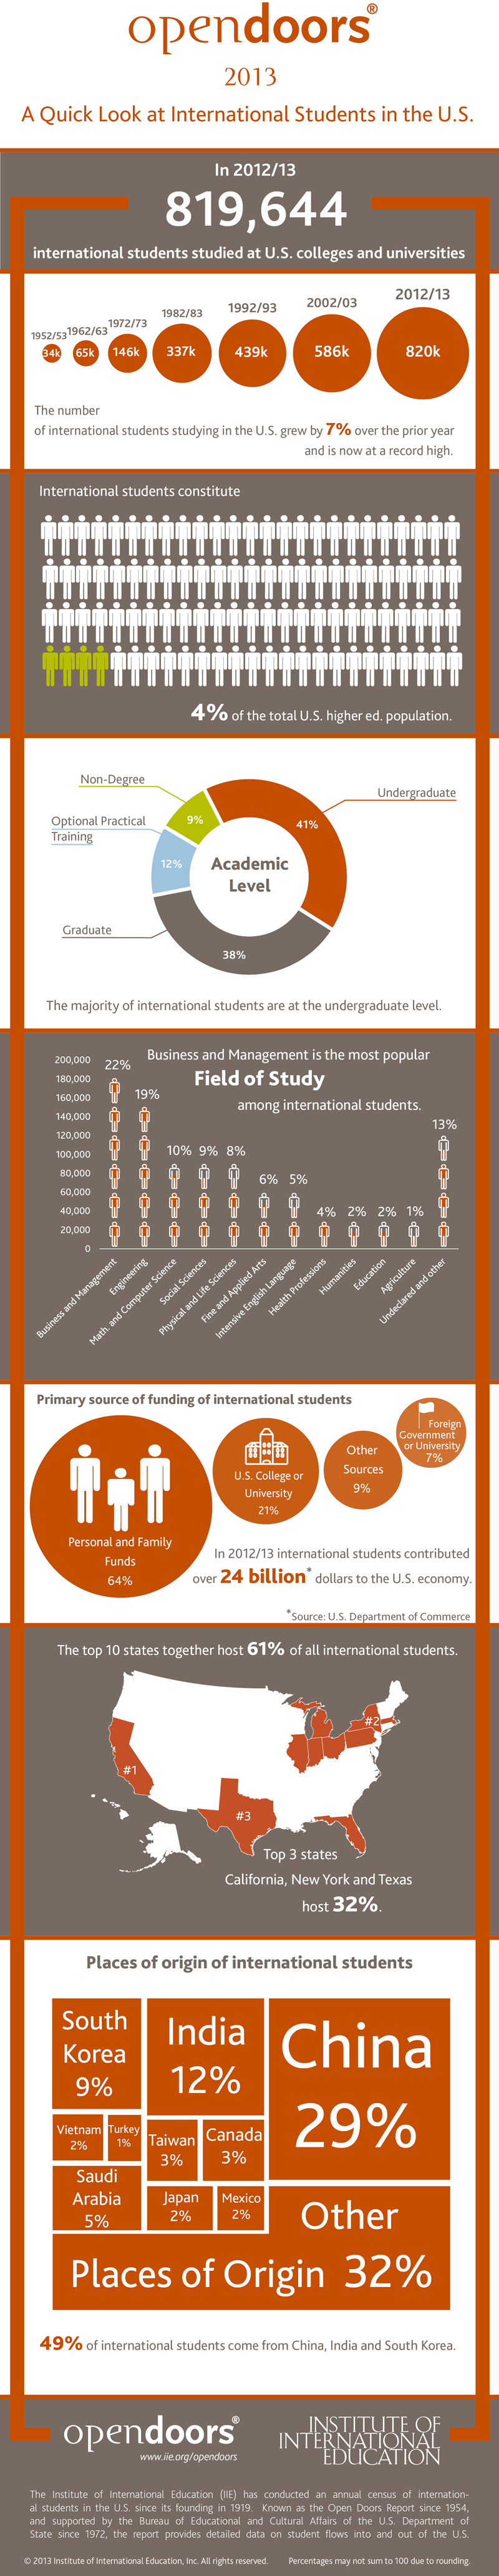 blog Image Open Doors - A Quick Look at International Students in the U.S.